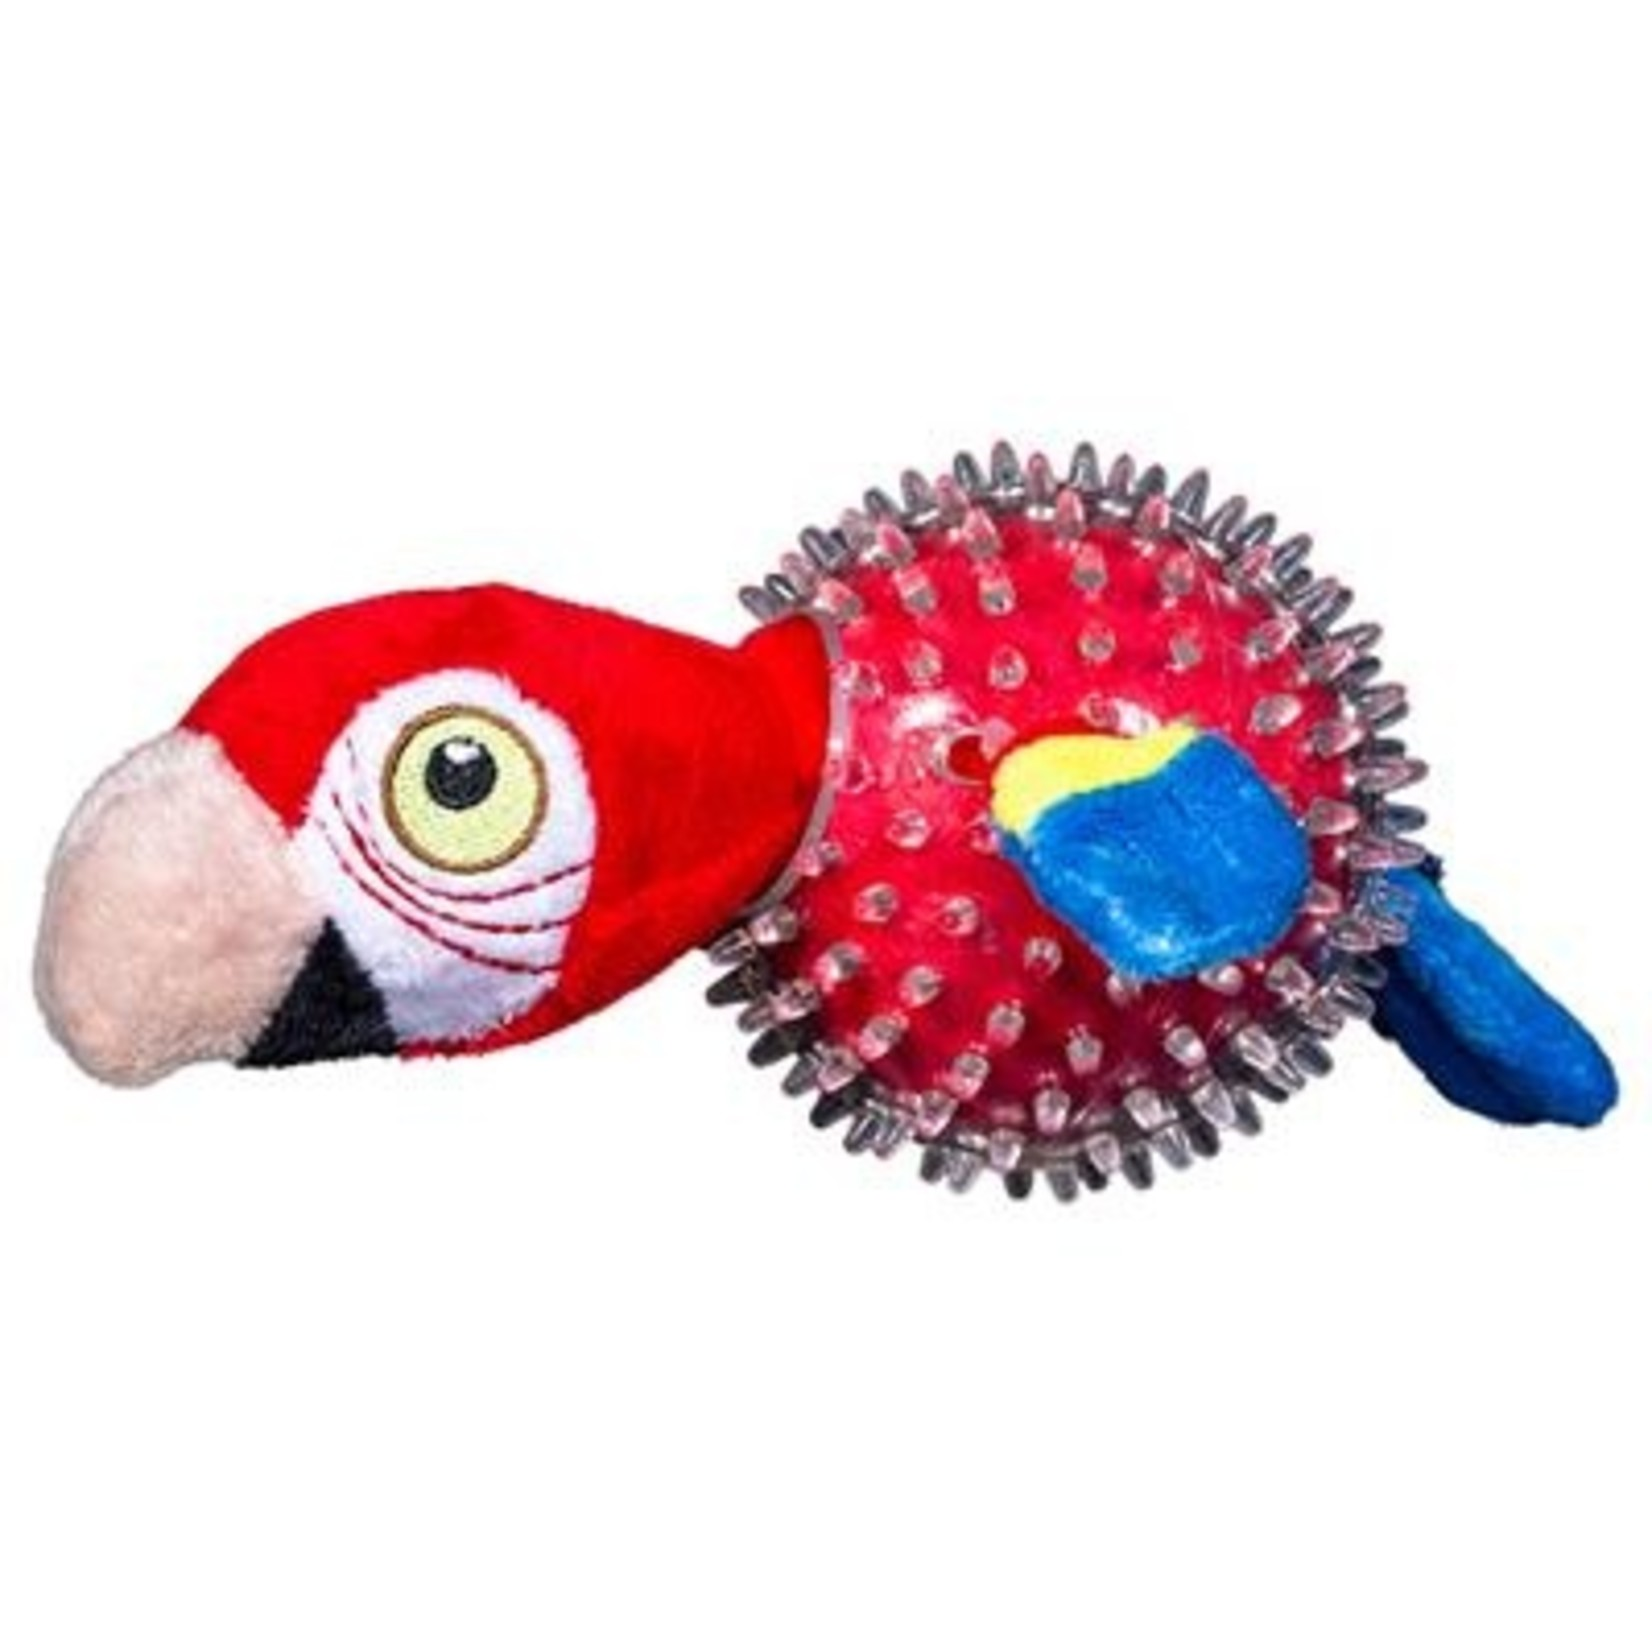 Spunky Pup Spunkypup Lil Bitty Squeakers Parrot Dog Toy